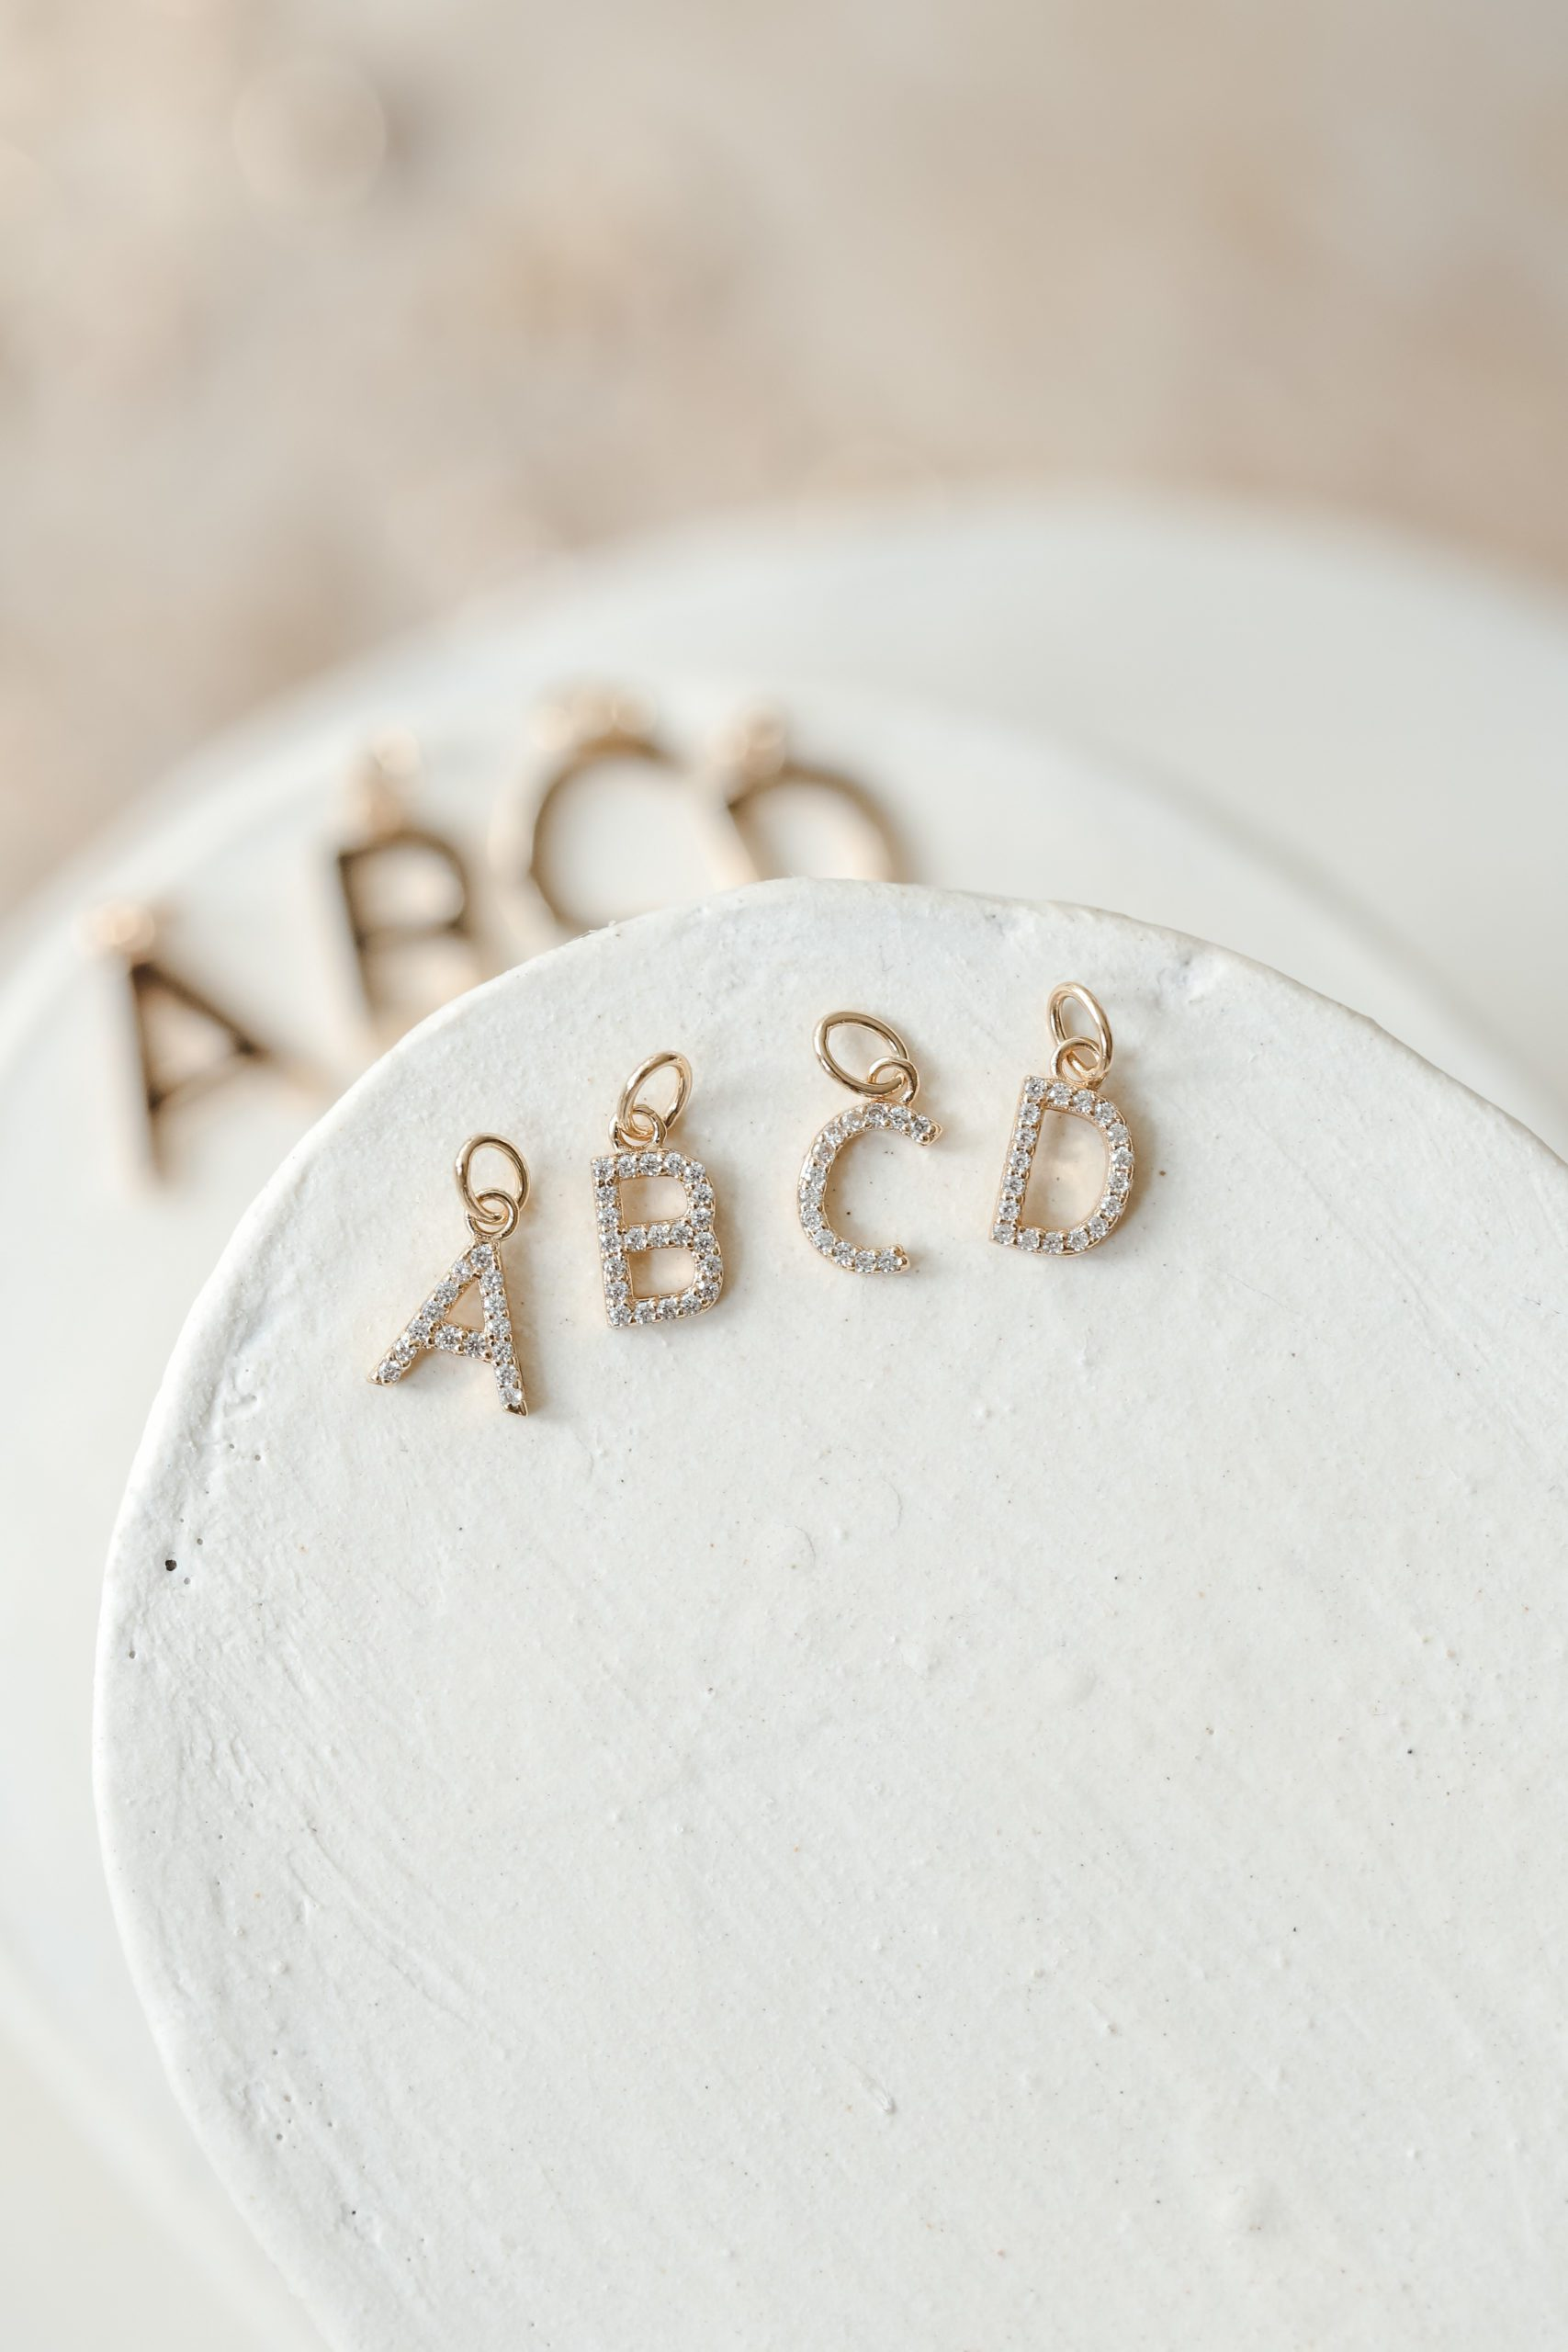 Jillian Harris x Melanie Auld New Charms in the Adorned Collection